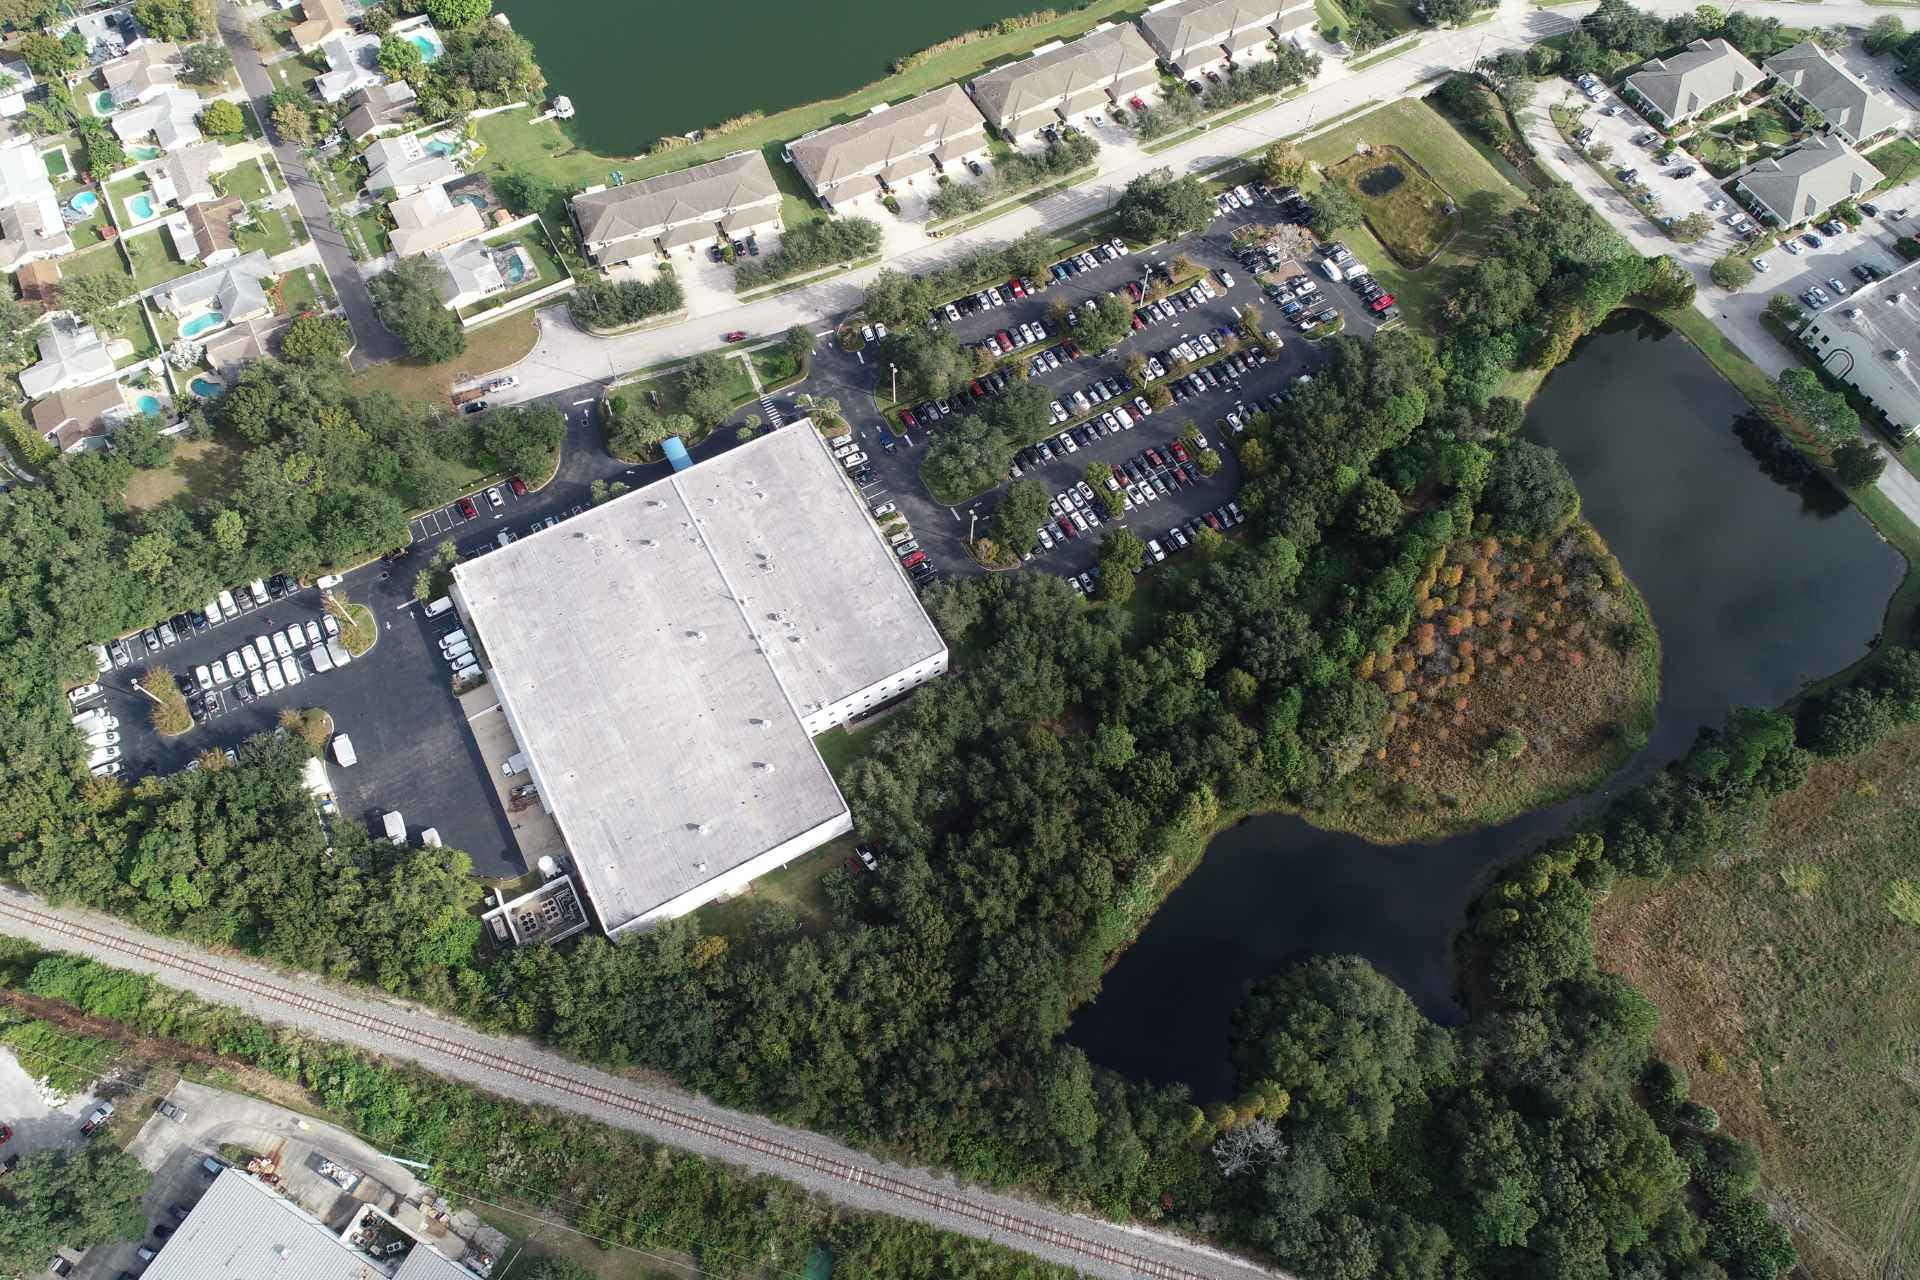 BayCare parking lots and overhead view